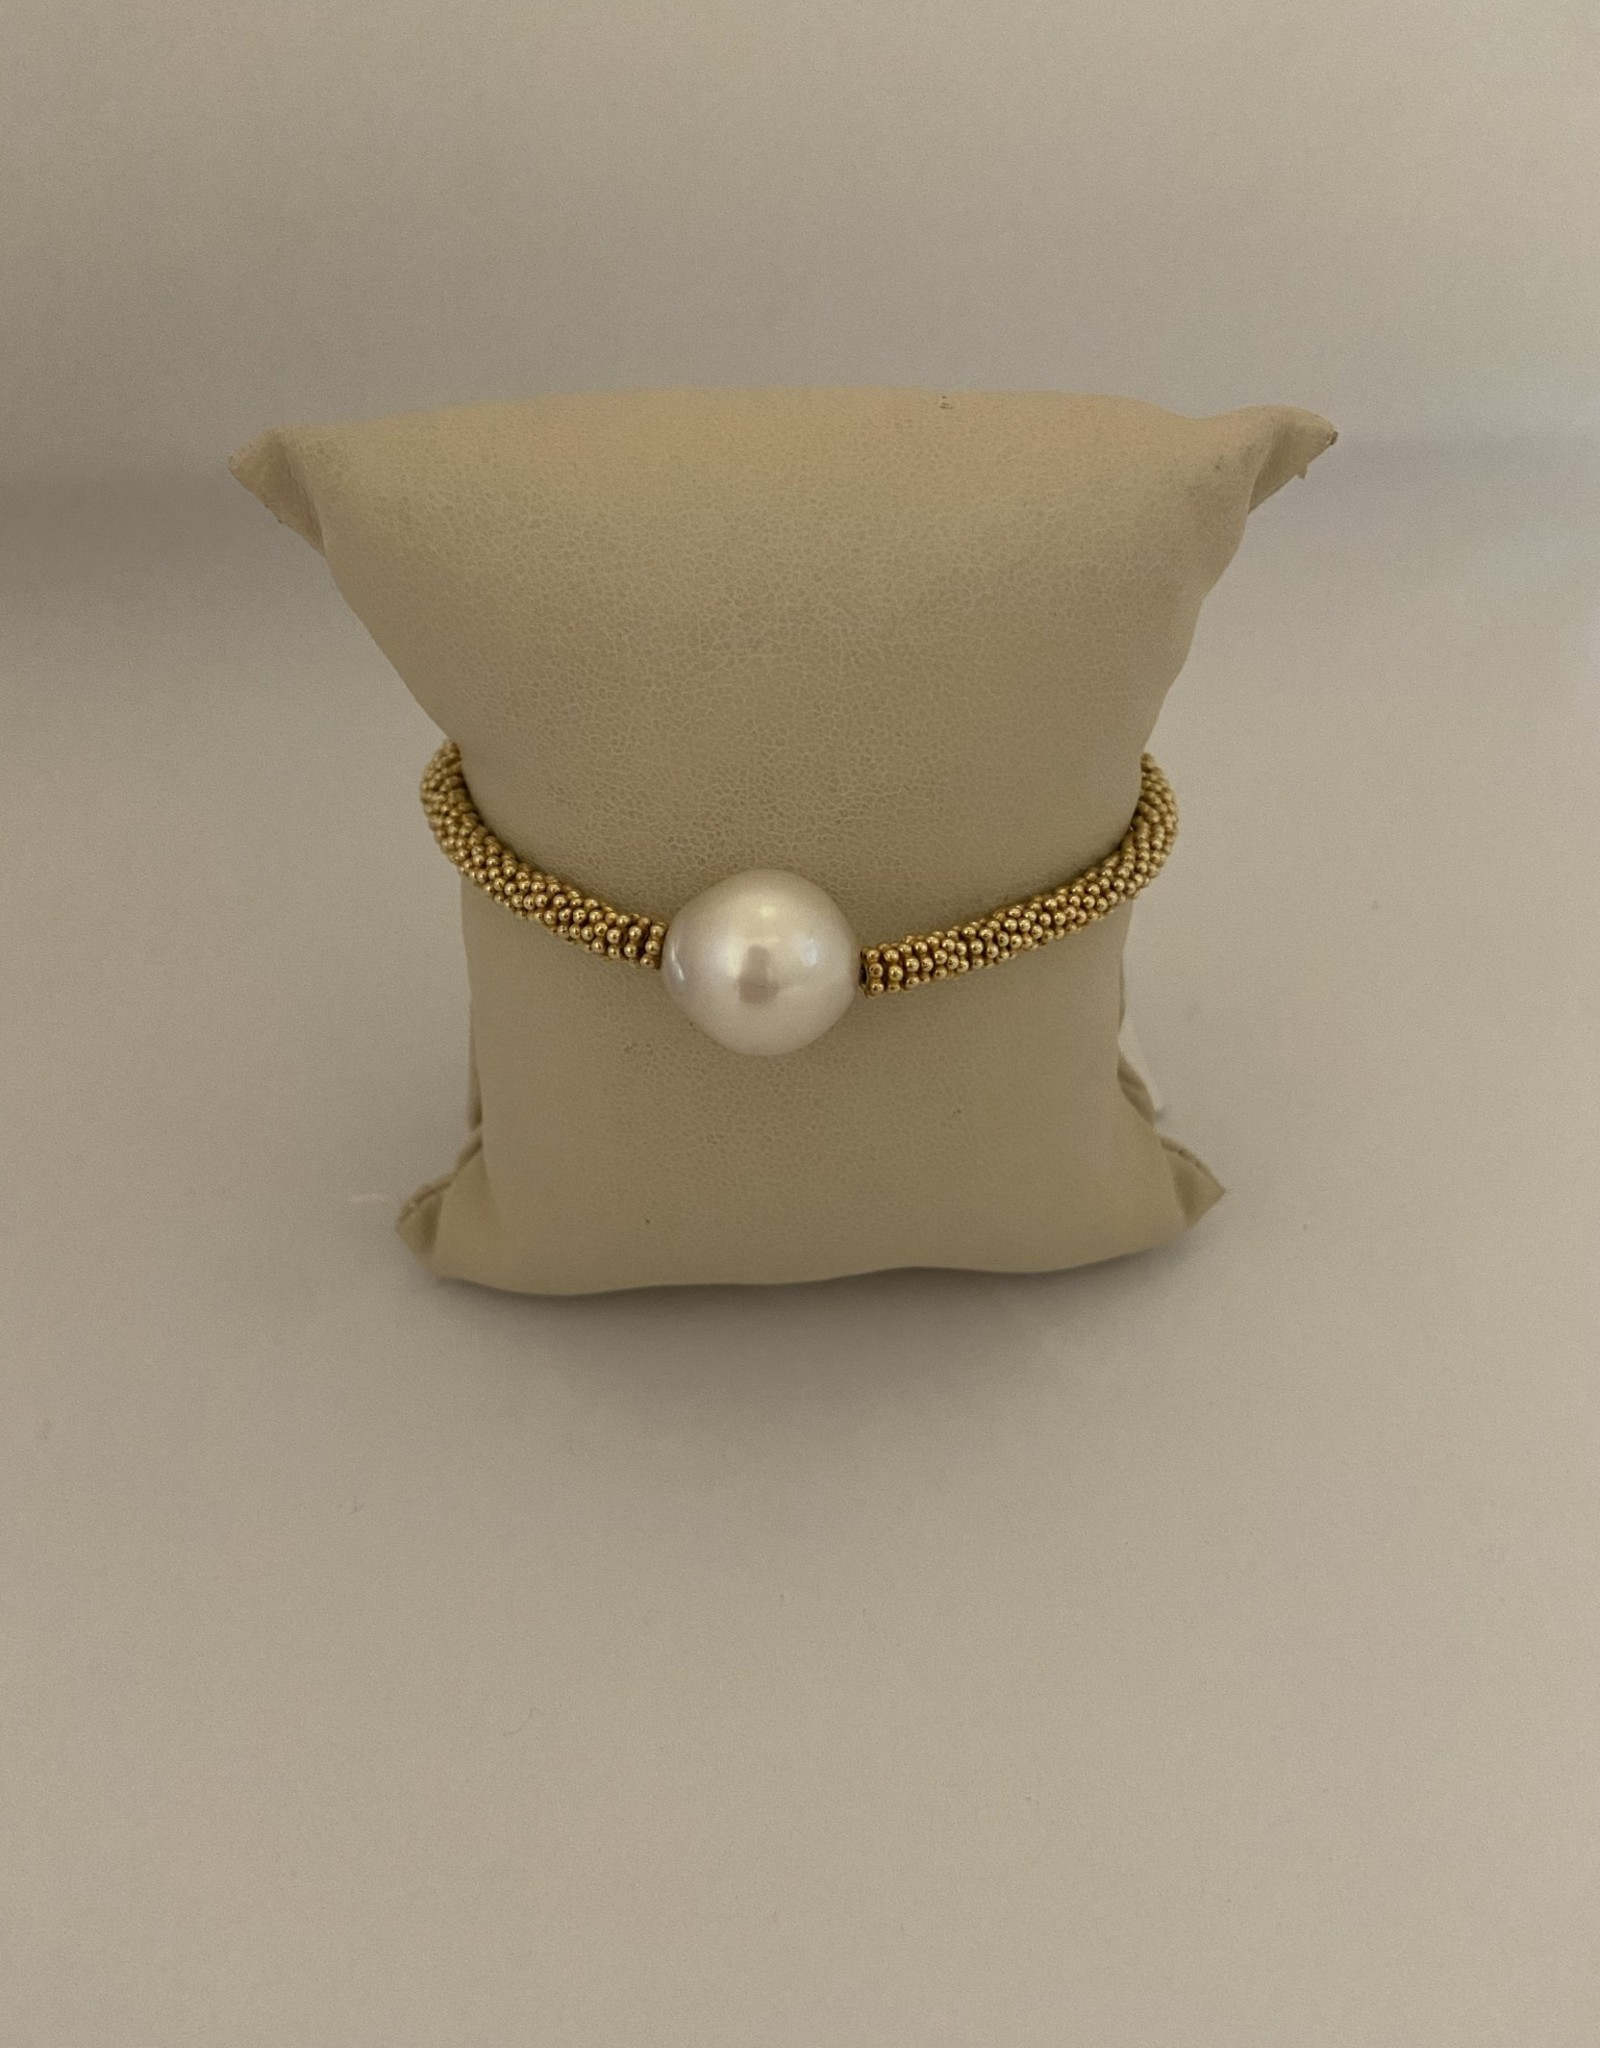 Wendy Perry Designs Maui South Sea Pearl Bracelet with Gold Vermeil Daisy Spacers